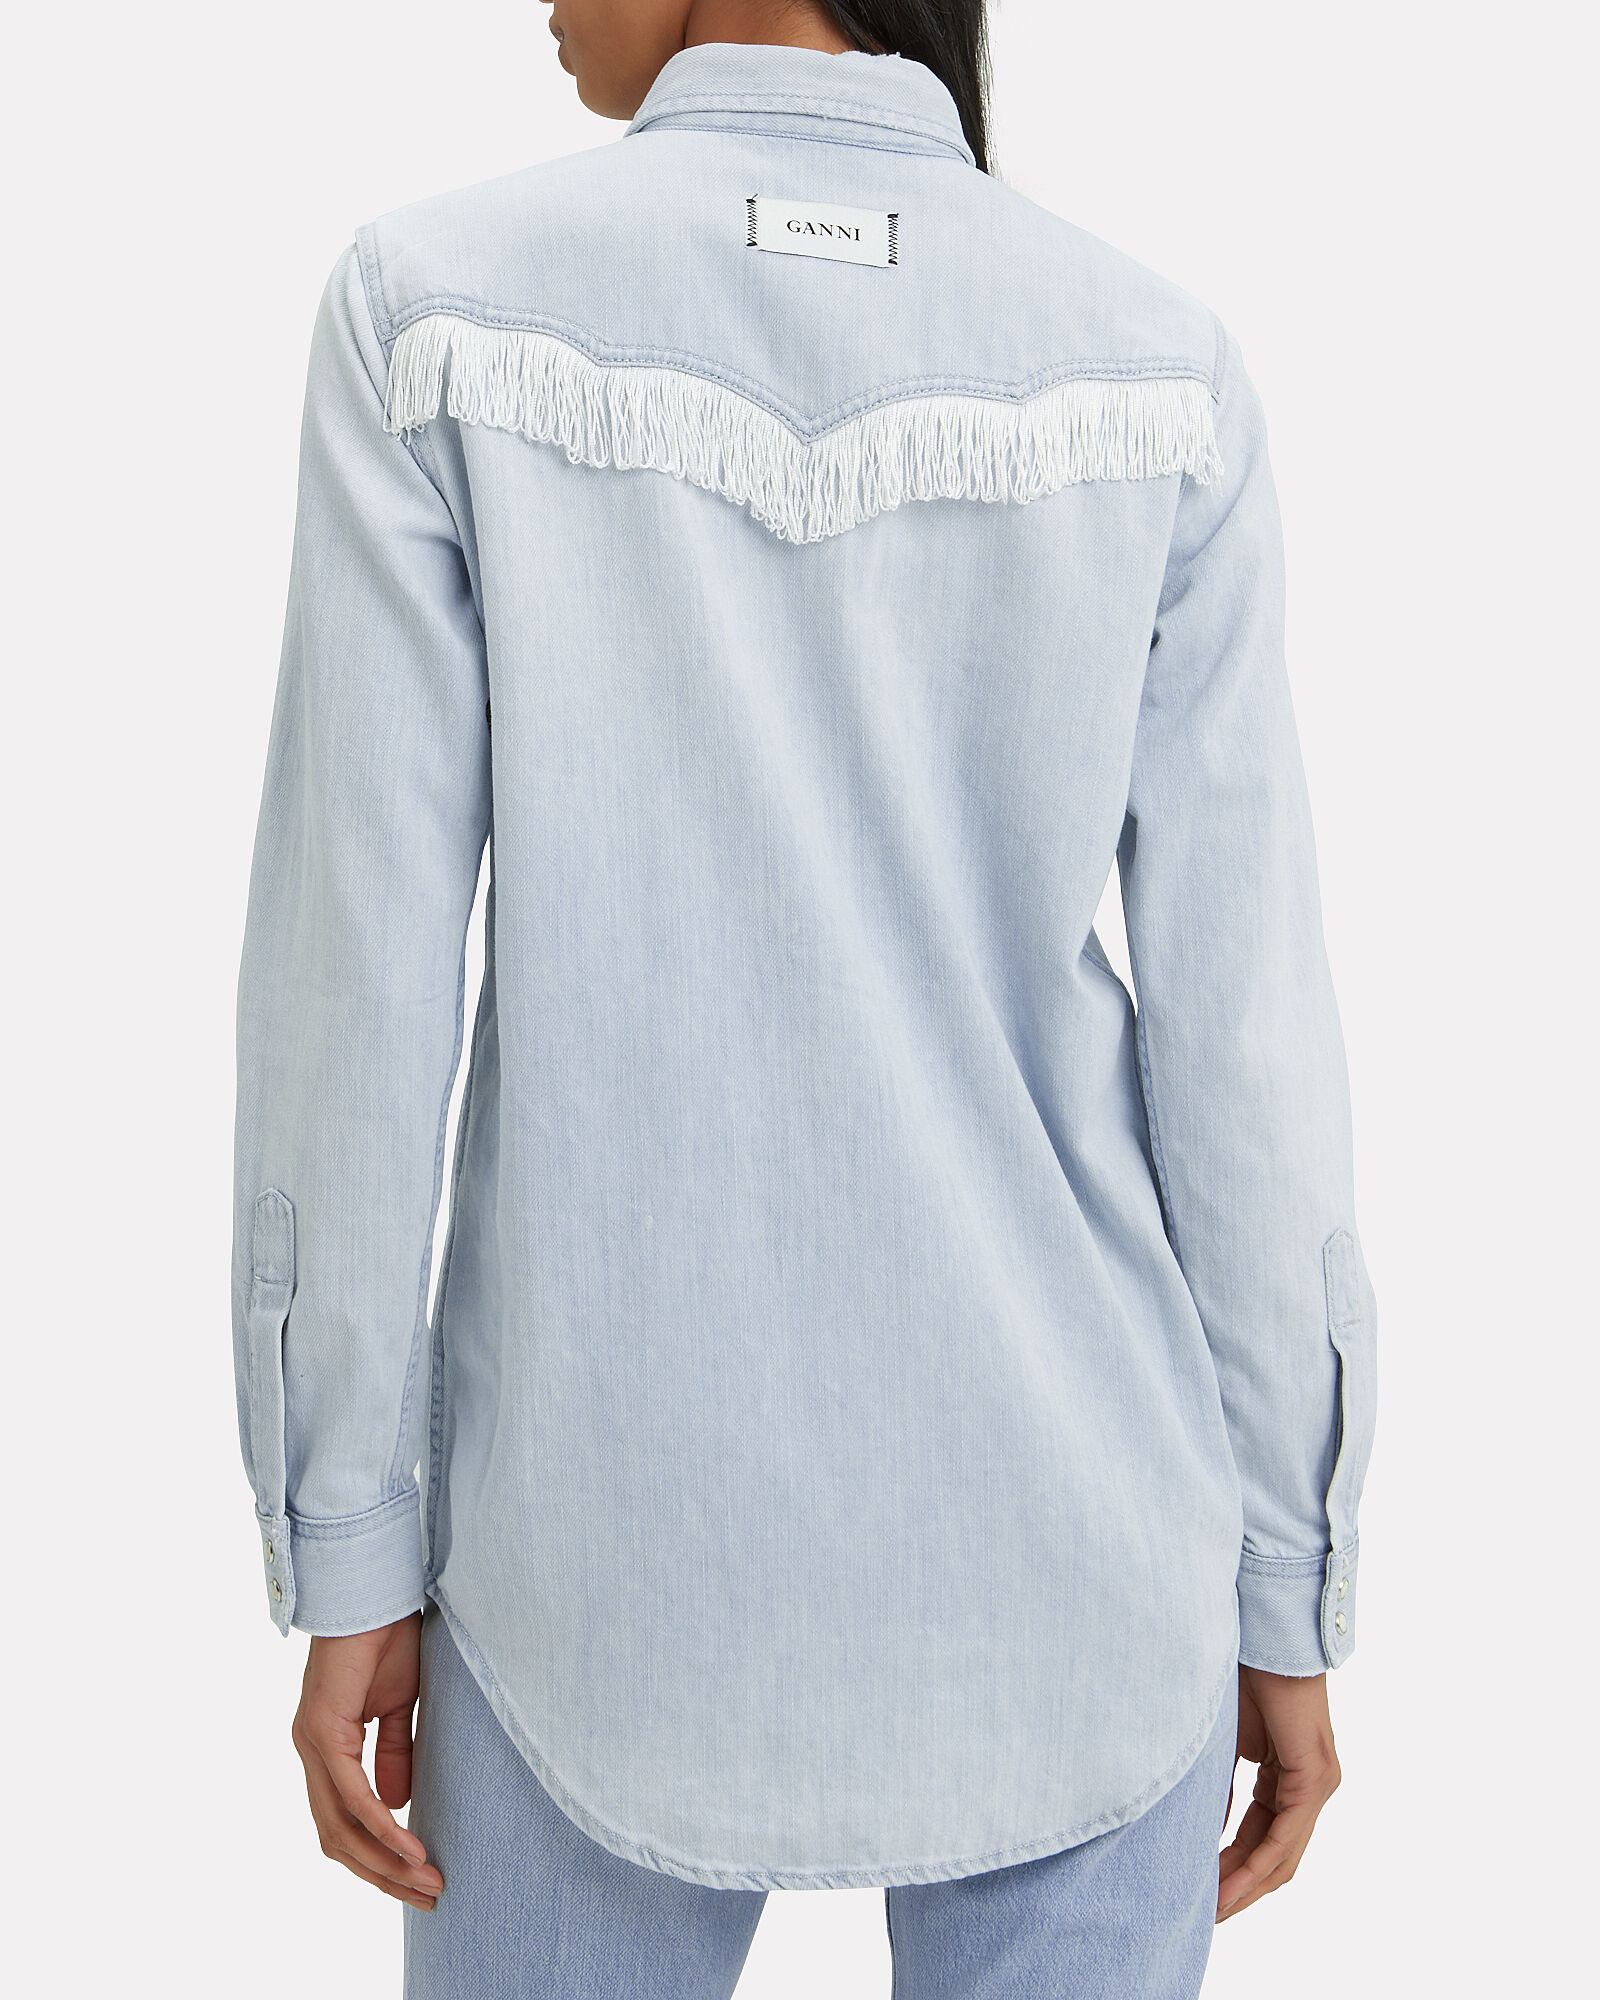 Fringe Denim Shirt, LIGHT WASH DENIM, hi-res